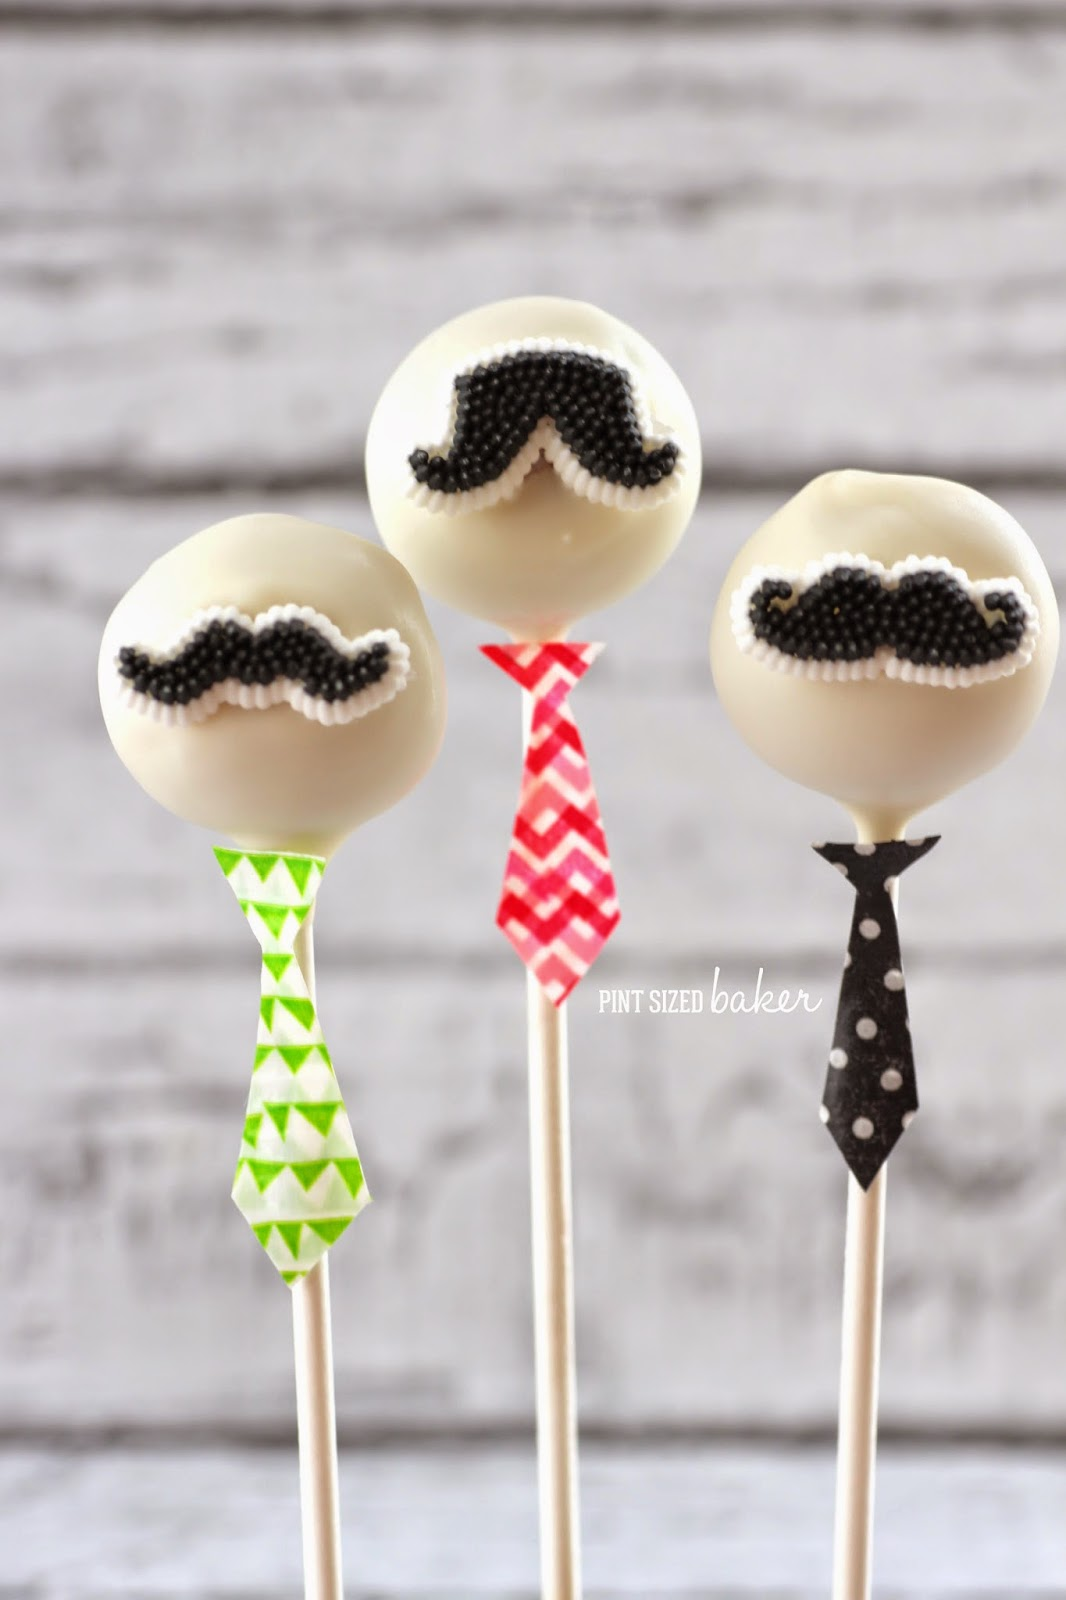 Just Little Bald Headed Cake Pops With Big Mustaches And A Fancy Tie On For Work